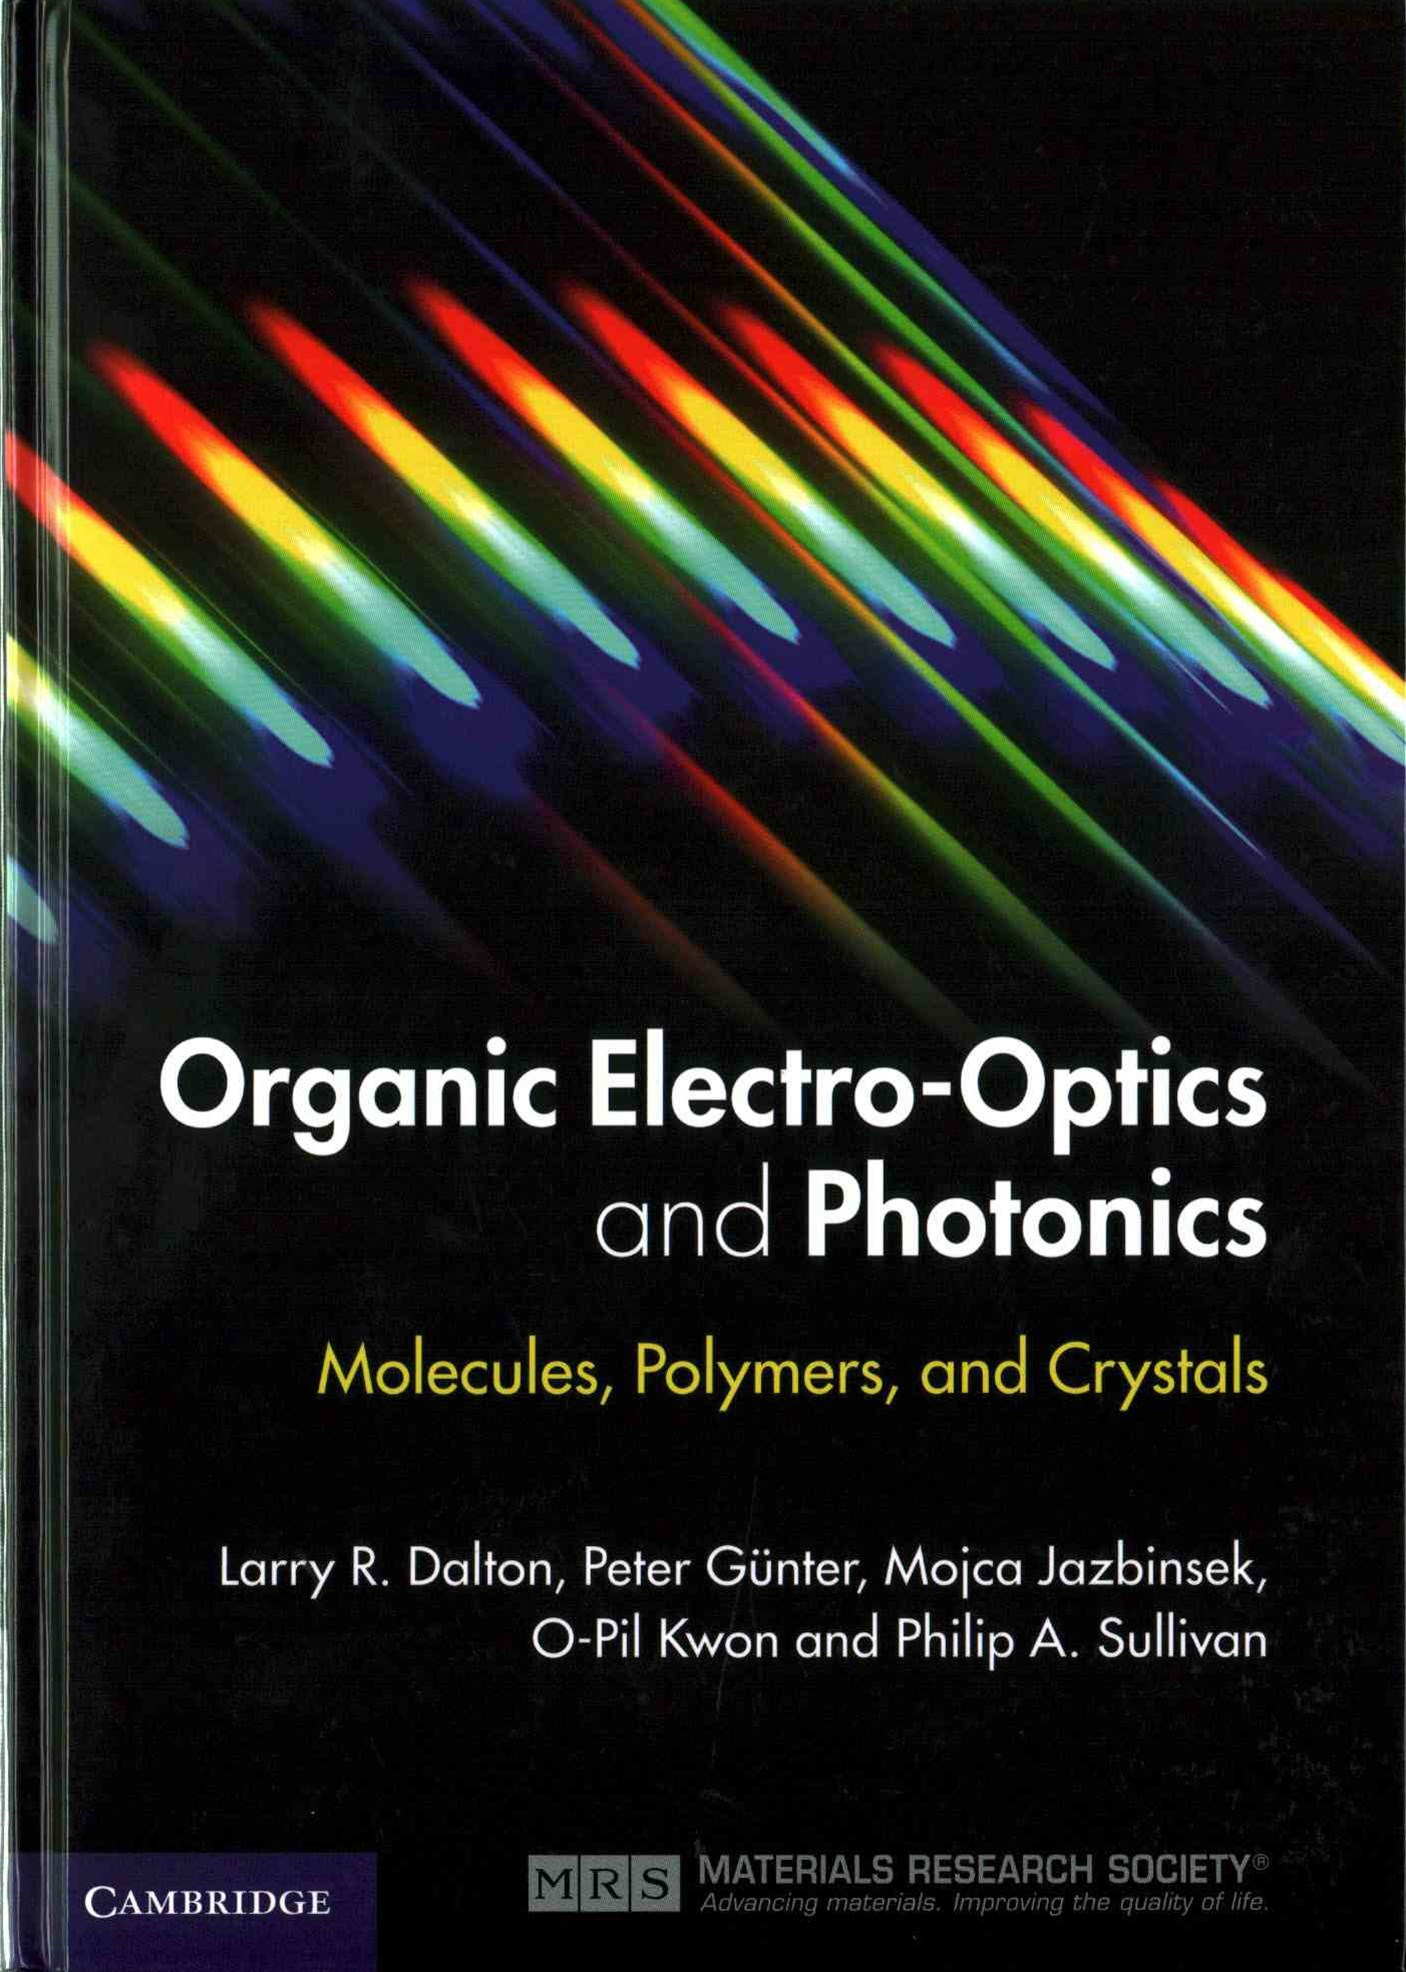 Organic Electro-Optics and Photonics